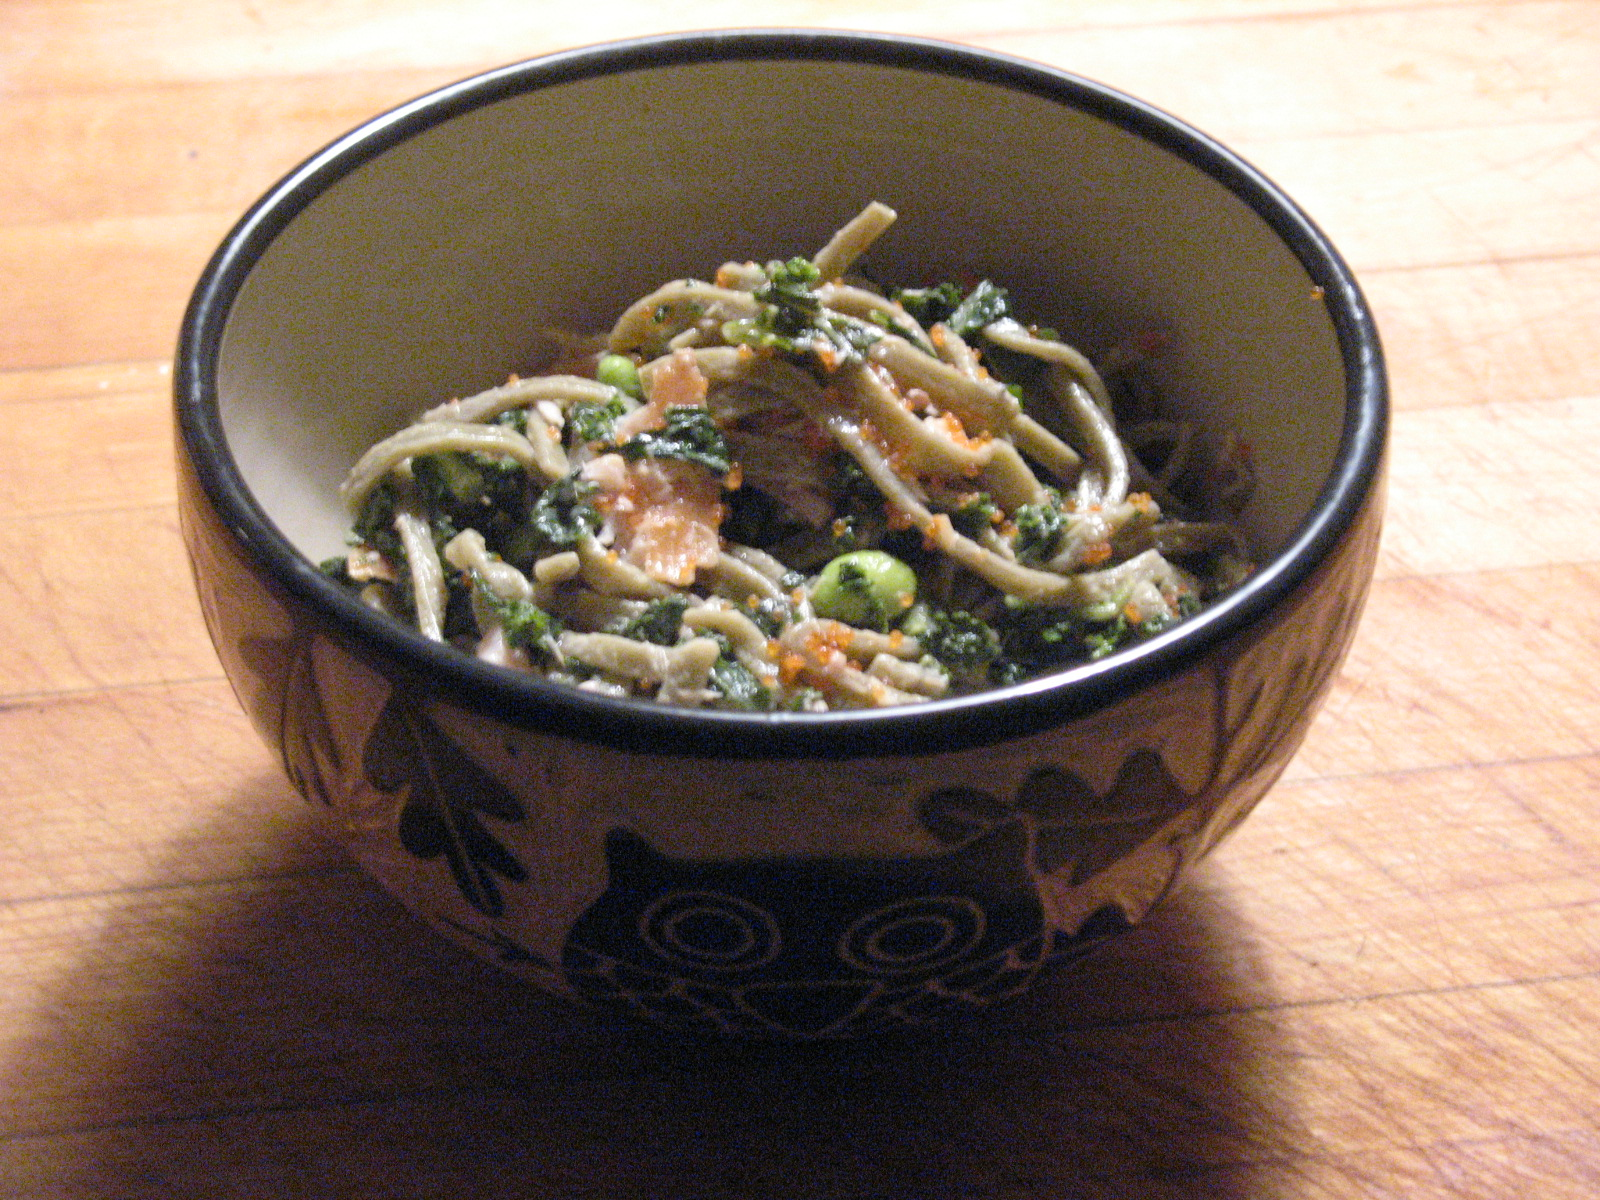 Green Tea Noodles with Tea Smoked Salmon, Edamame, Kale and Lemon Sesame Aioli